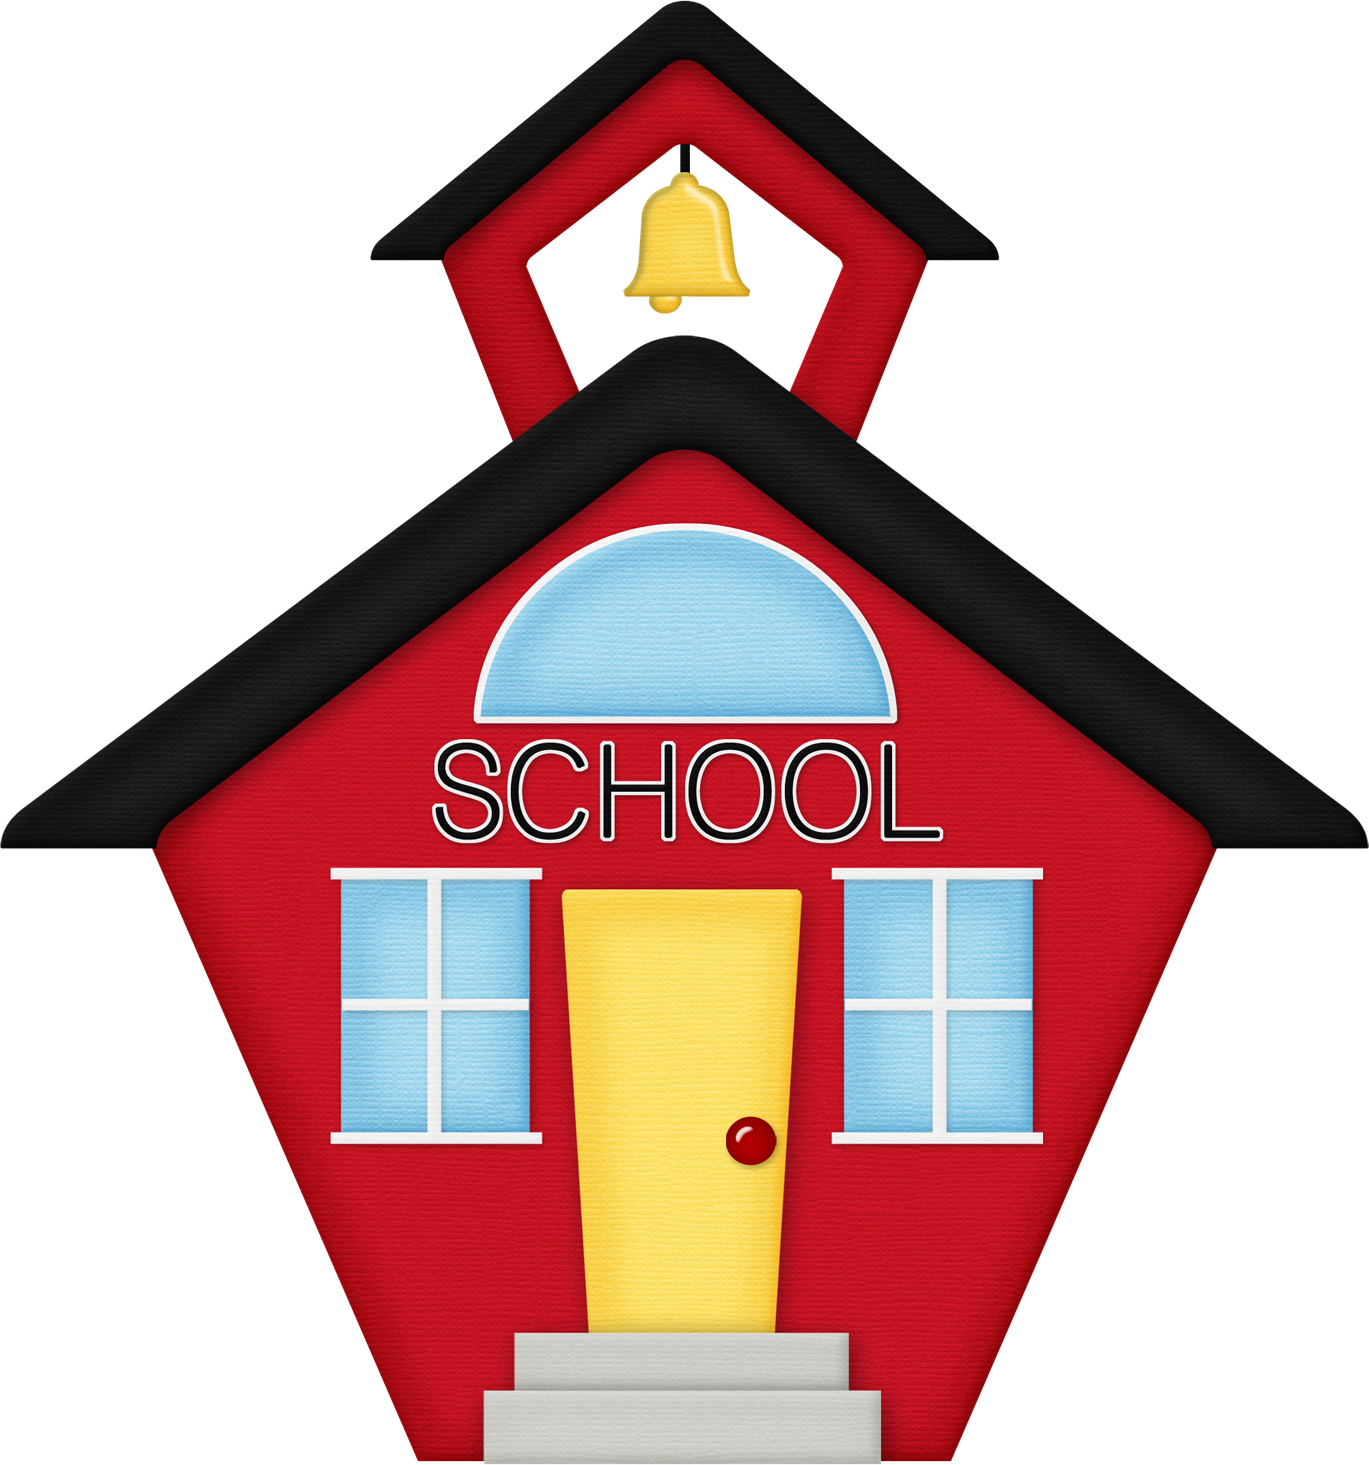 Picture Of Schoolhouse - ClipArt Best